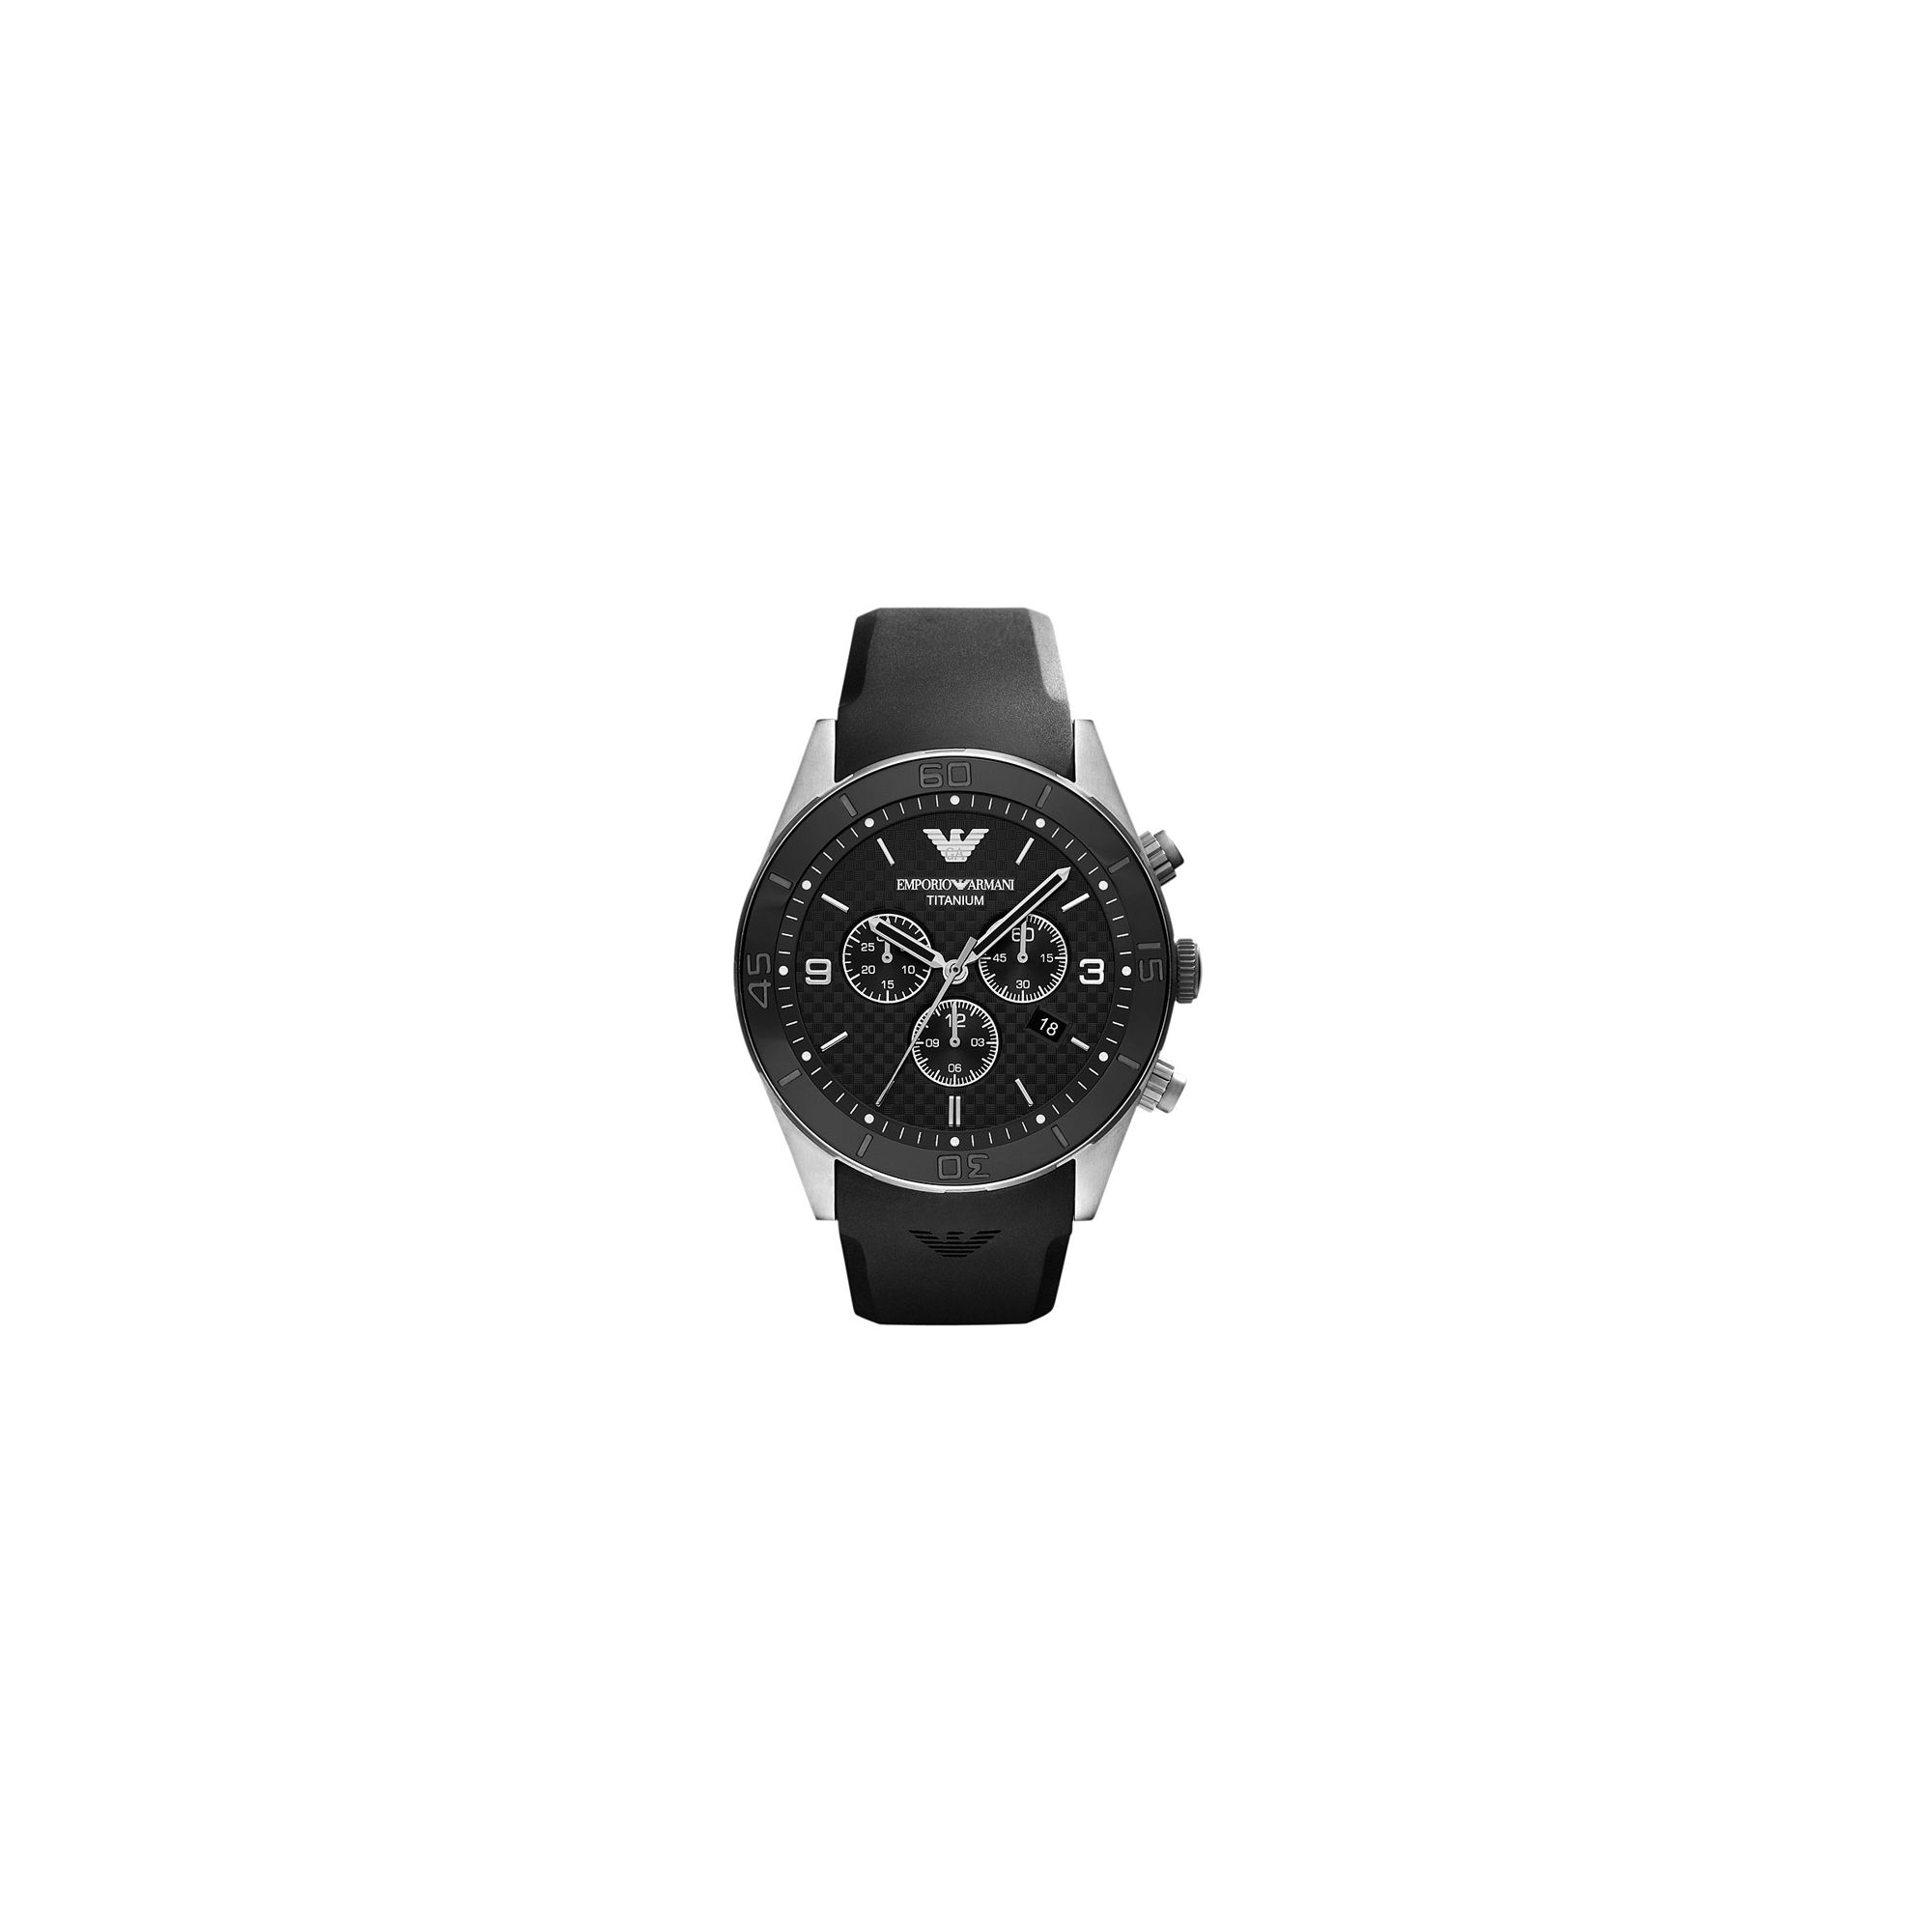 Emporio Armani Gents Black Rubber Strap Chronograph Watch AR9500 at Tesco Direct